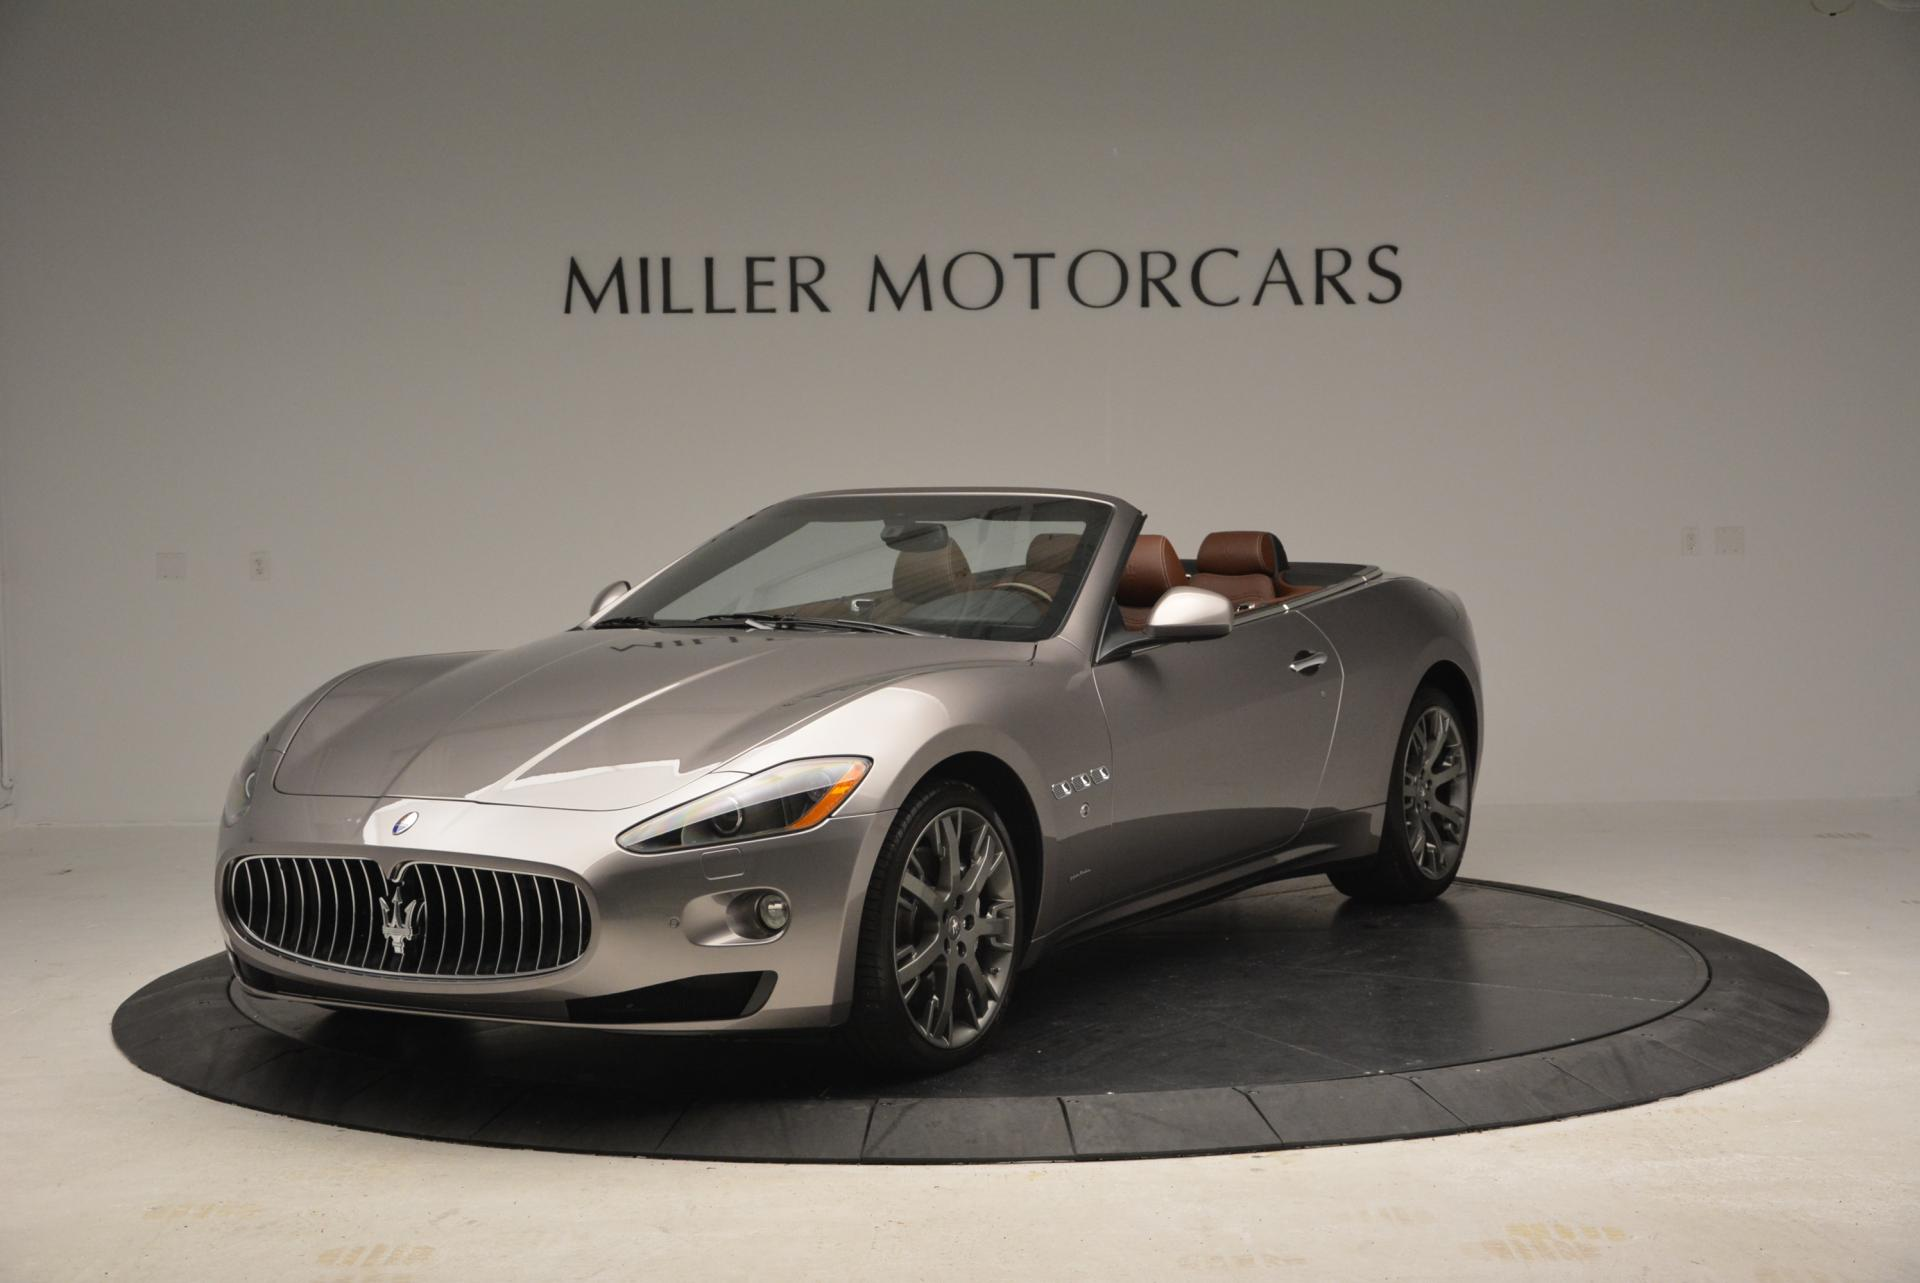 Used 2012 Maserati GranTurismo for sale Sold at Bugatti of Greenwich in Greenwich CT 06830 1